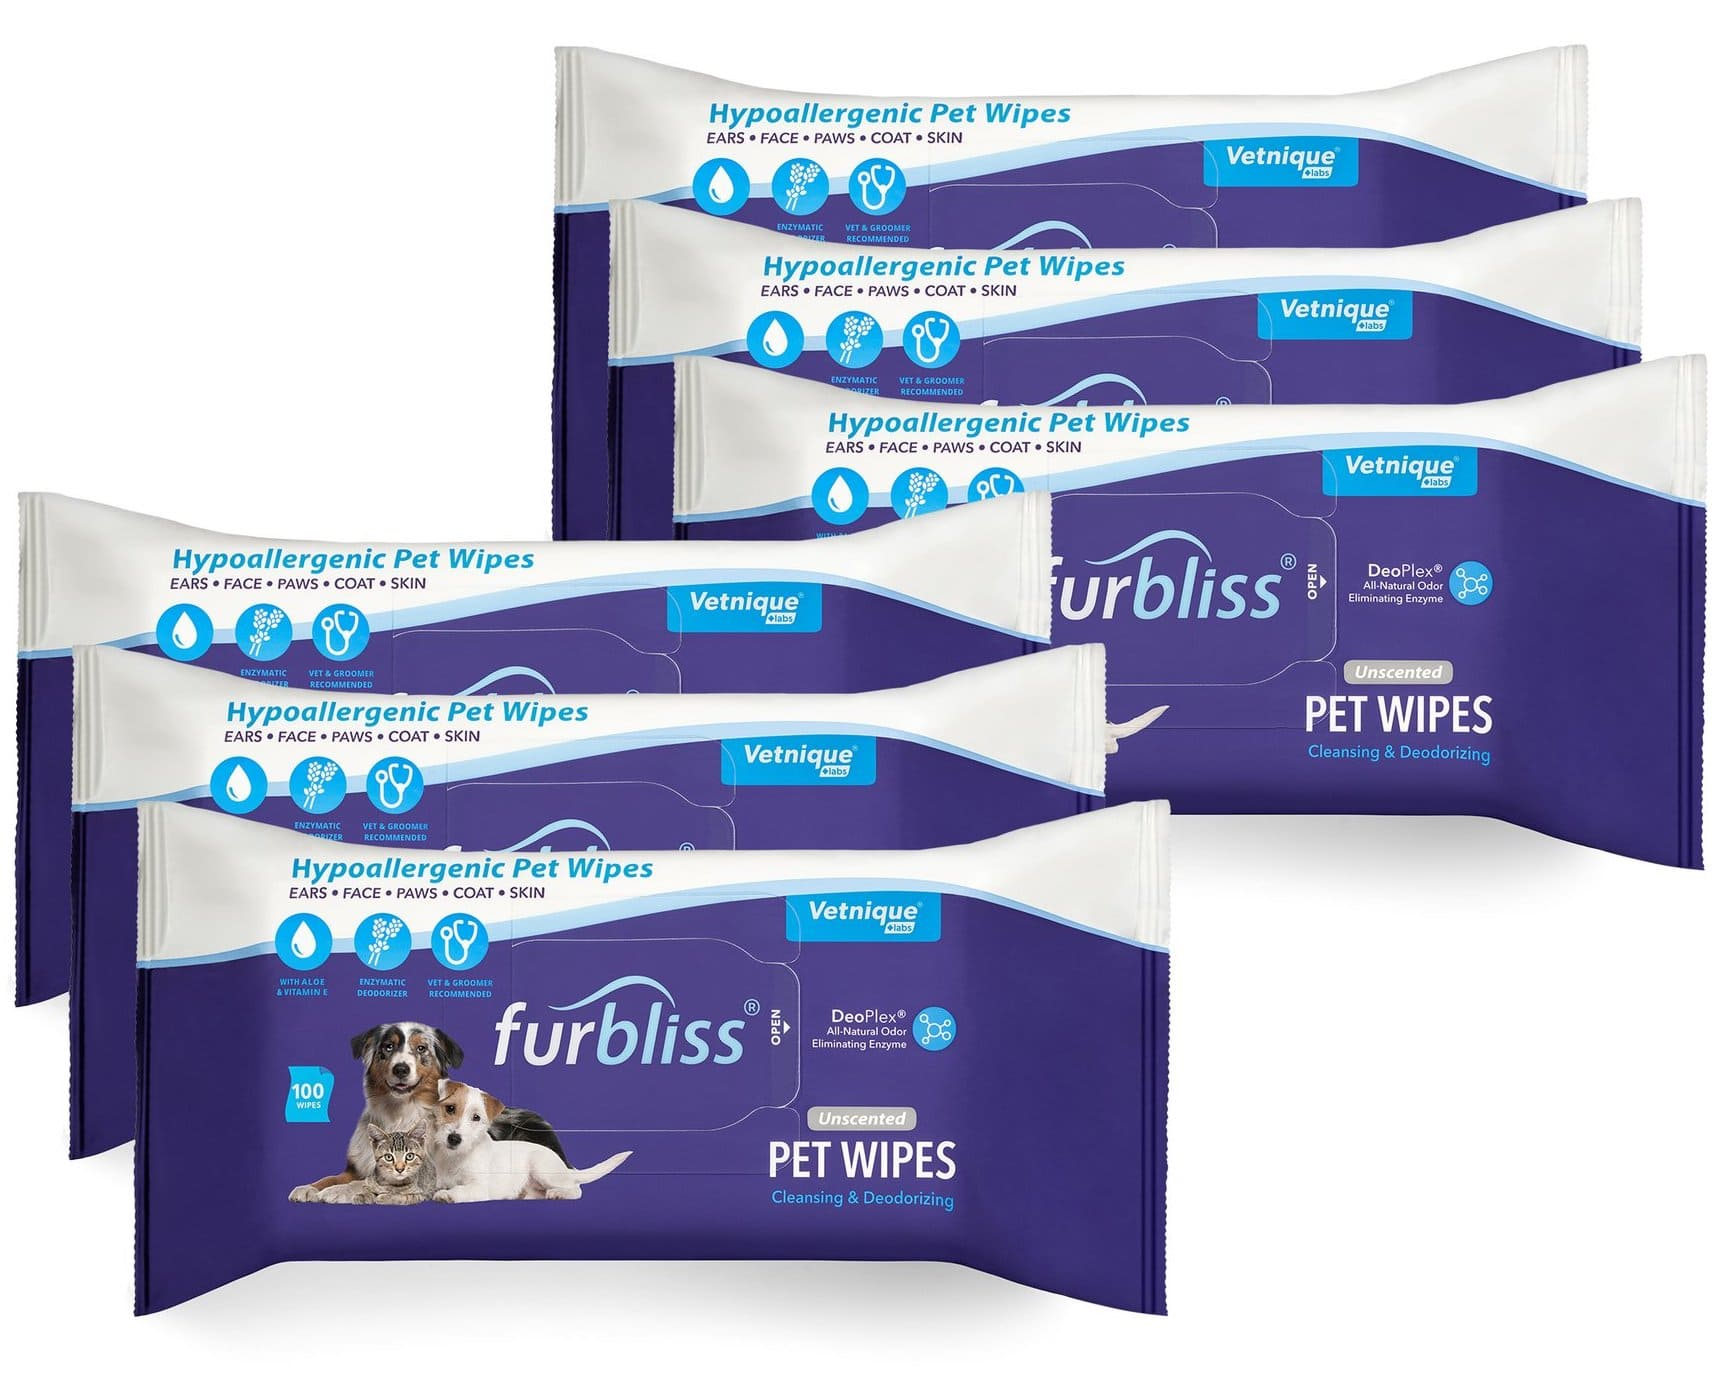 Furbliss Hygienic Grooming Pet Wipes 100 count (6 Pack) Unscented 1